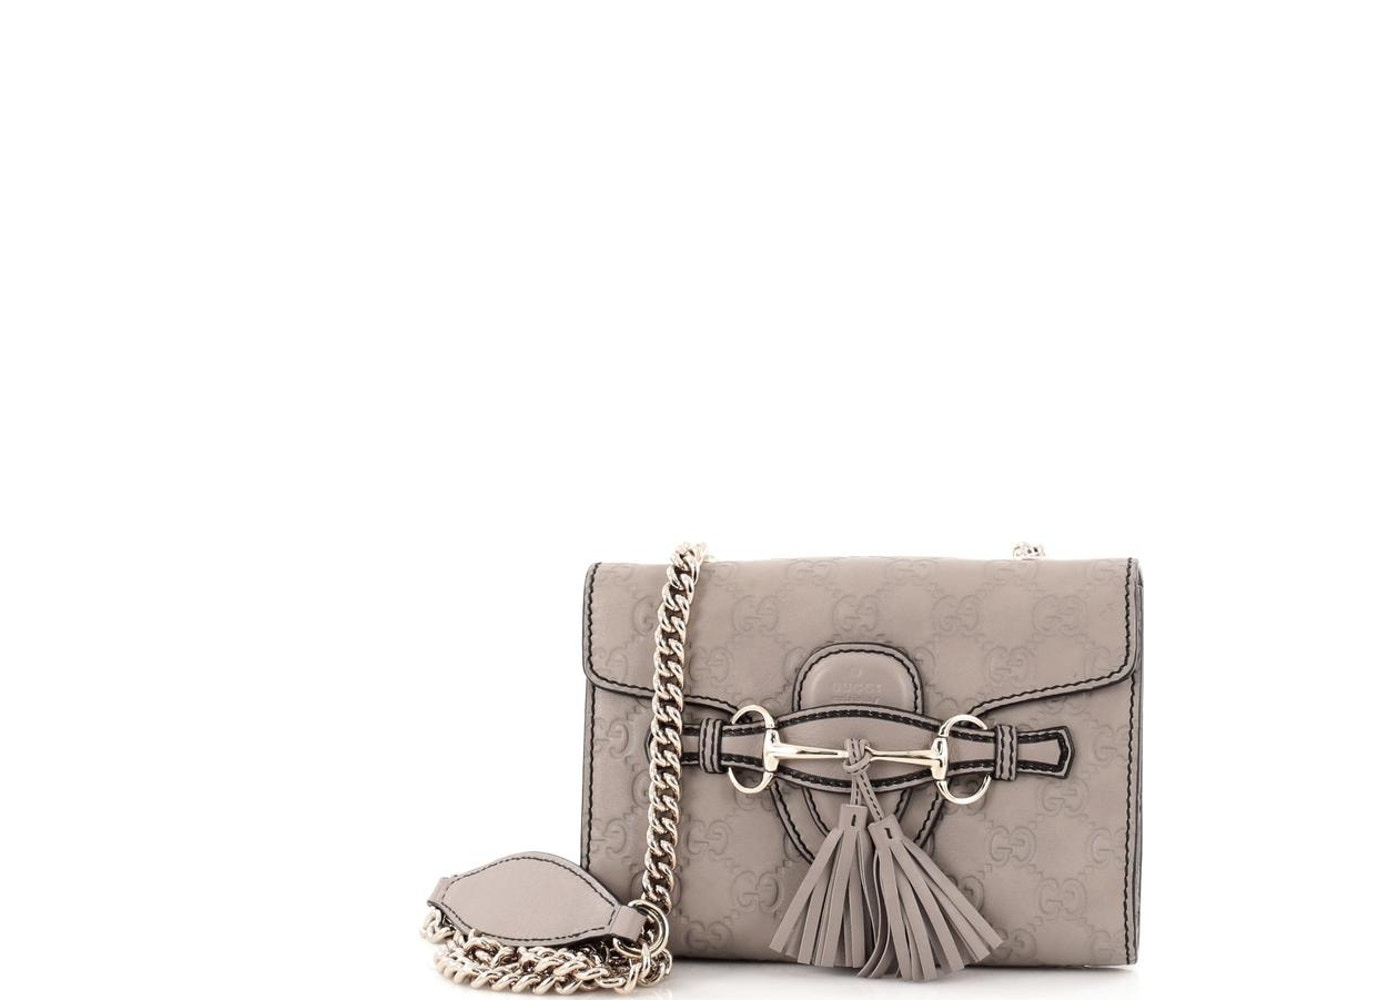 f288b2020a26c Gucci Chain Strap Flap Emily Monogram Guccissima Mini Taupe Grey. Monogram Guccissima  Mini Taupe Grey